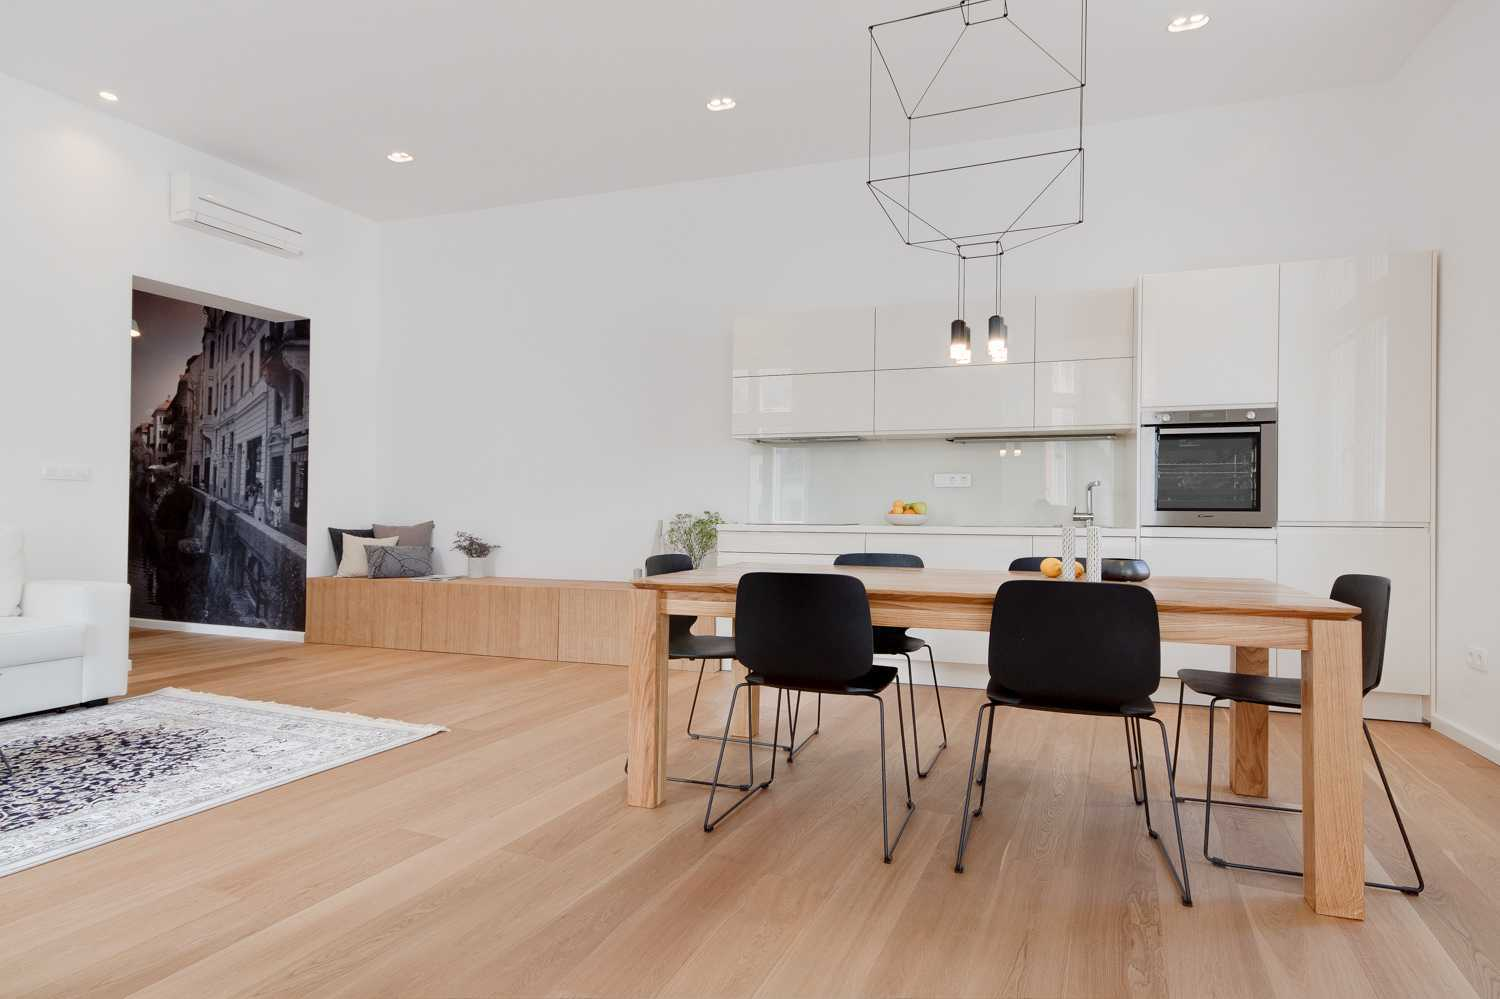 The ceilings are high and add to the spaciousness of the apartment.